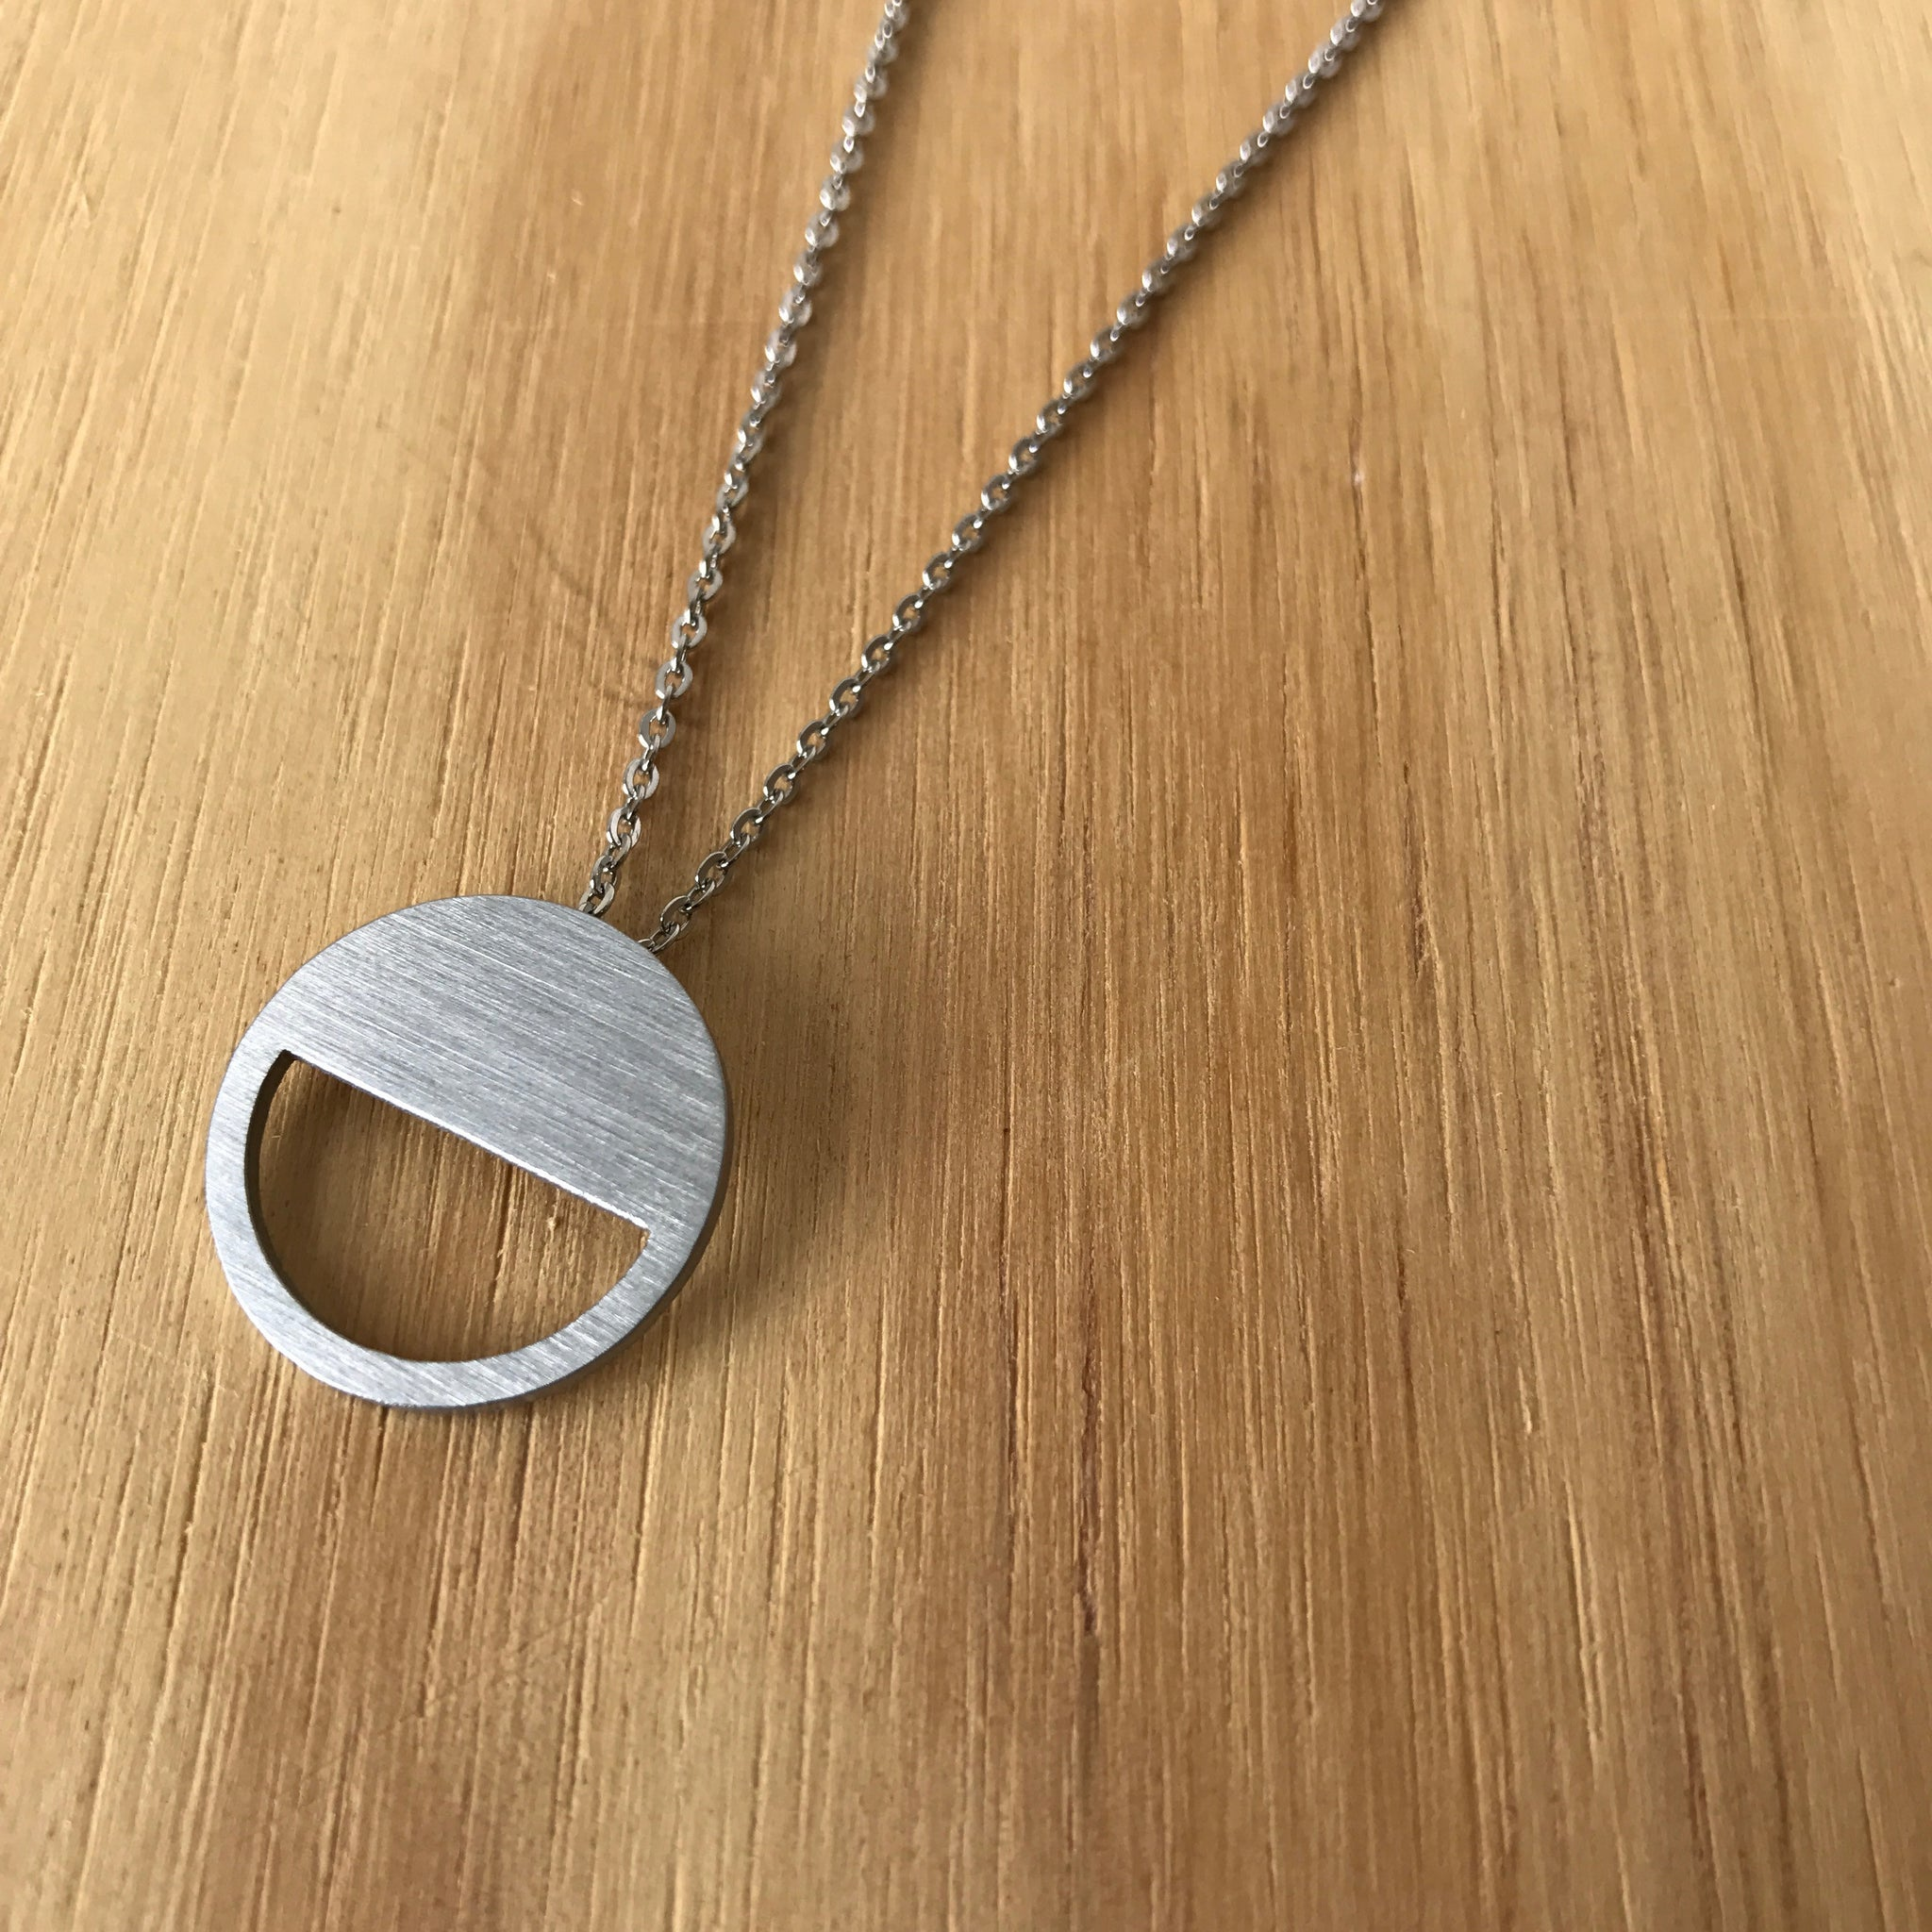 The Circle Cutout Stainless Steel Necklace by Days of August